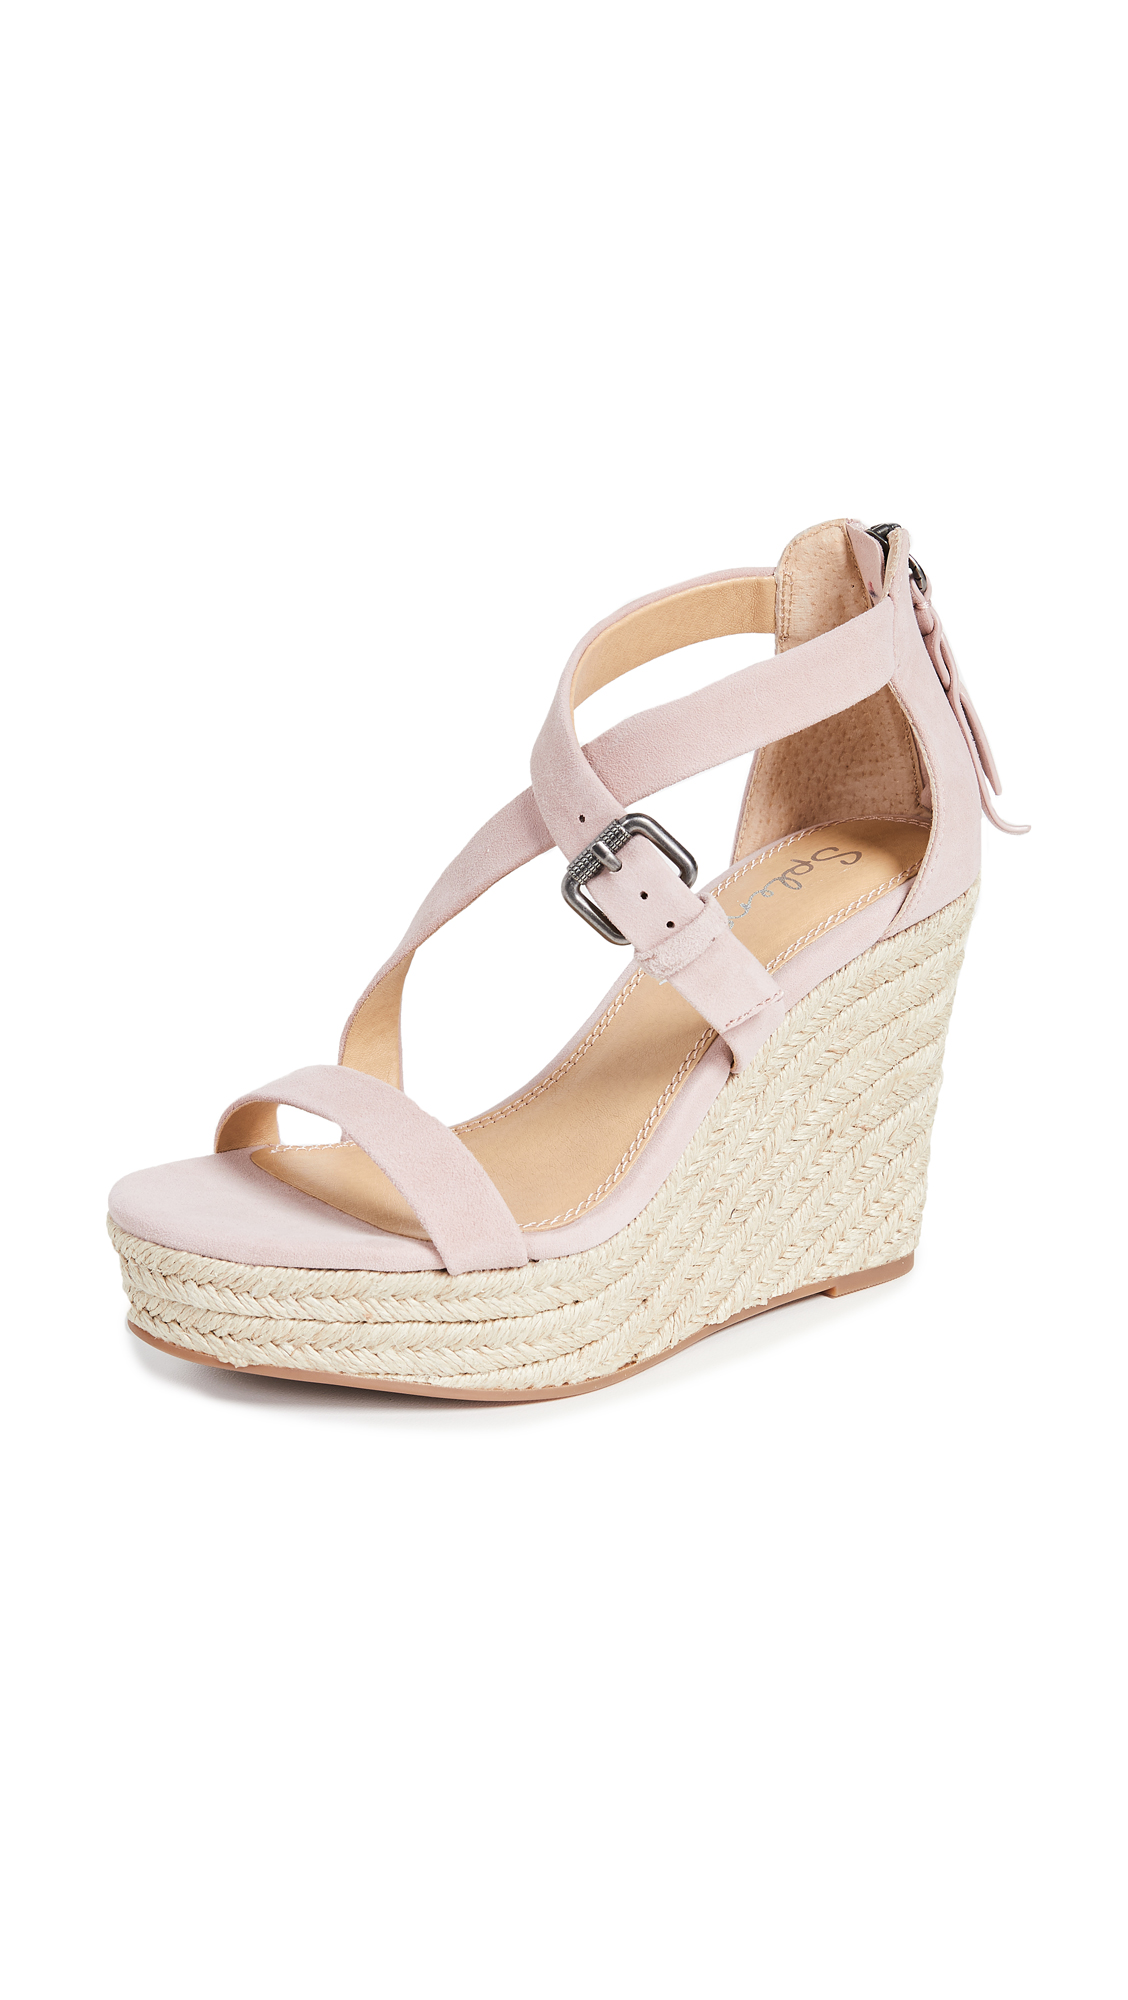 Splendid Stormi Wedge Espadrilles - Rose